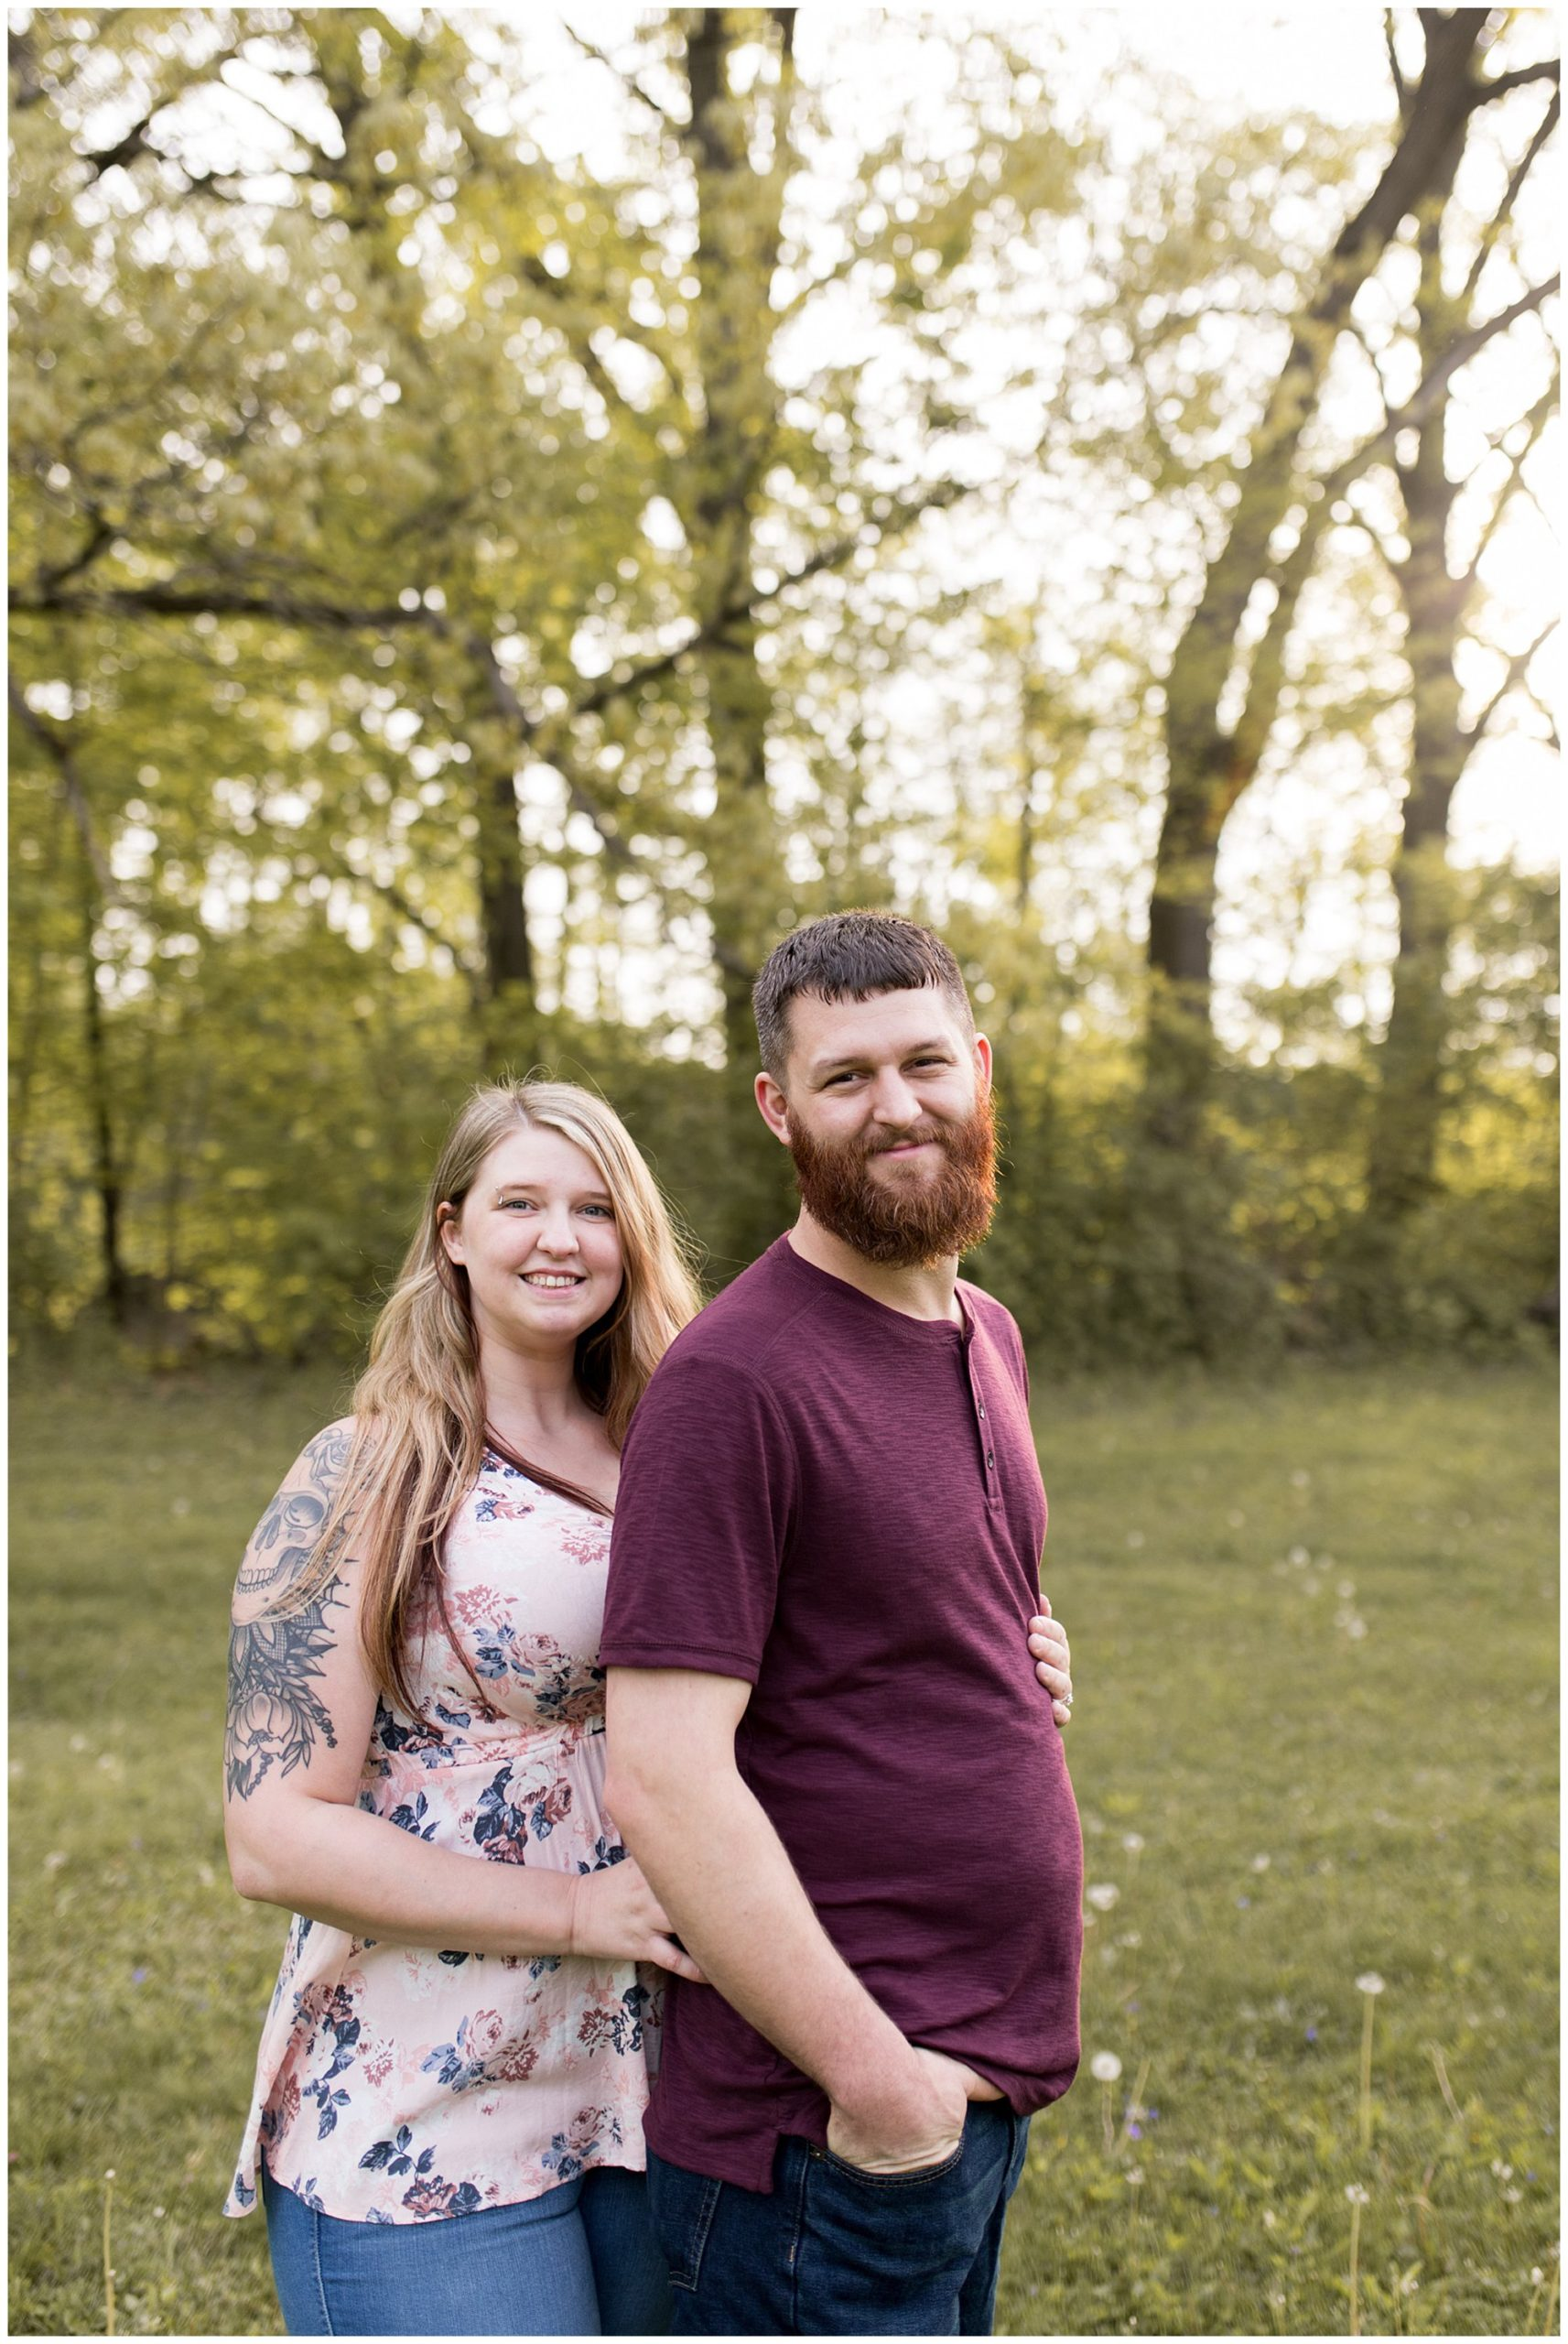 Foster Park engagement session in Fort Wayne, Indiana